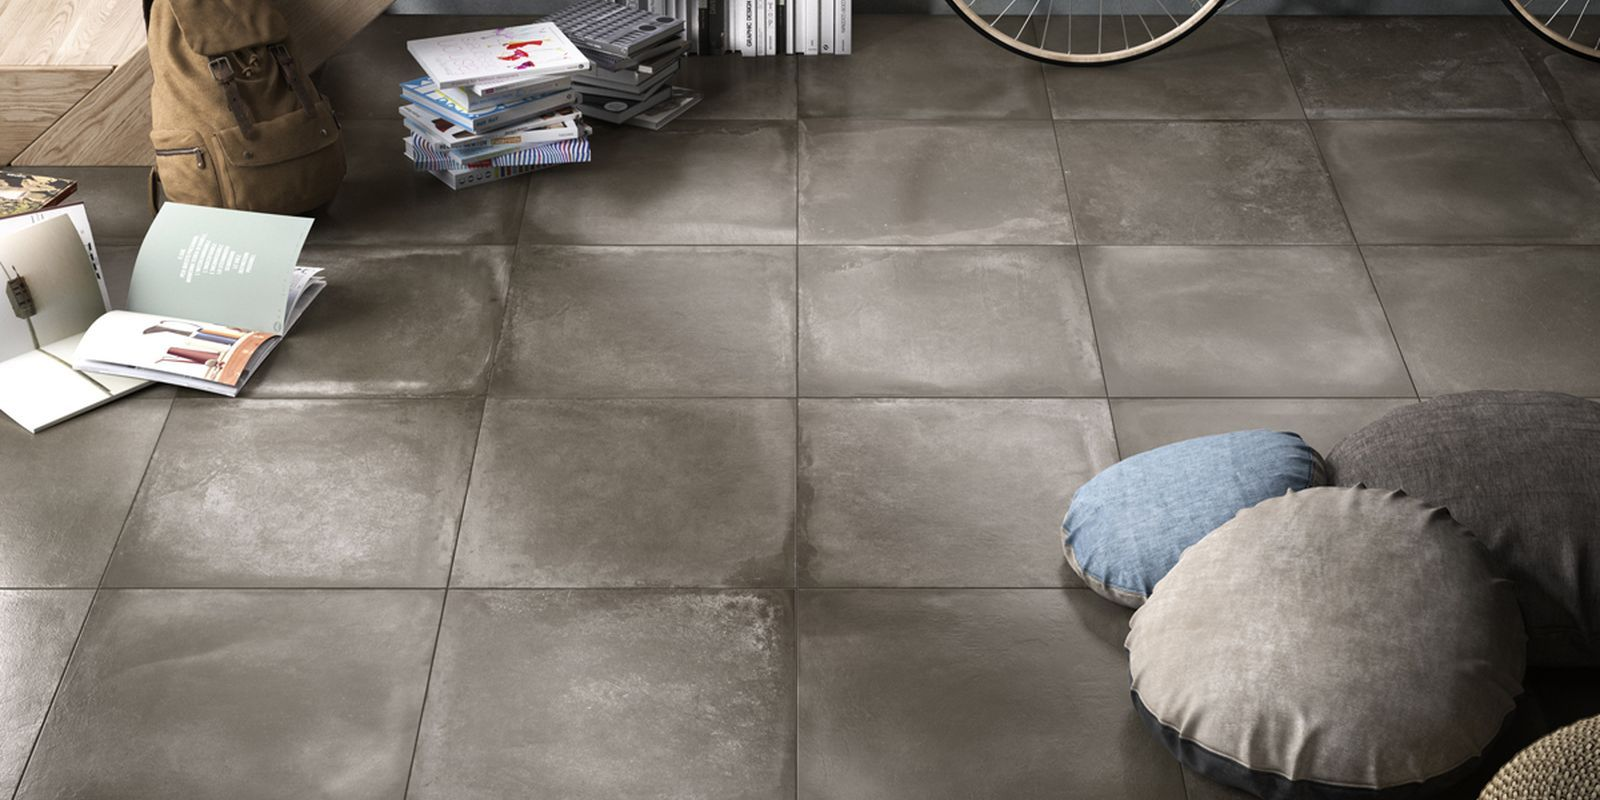 Tiles riverside living moderne ceramic grs crame am riverside cooperativa ceramica imola produces floor and wall coverings in porcelain stoneware suitable for both interior and exterior for residential and commercial dailygadgetfo Choice Image